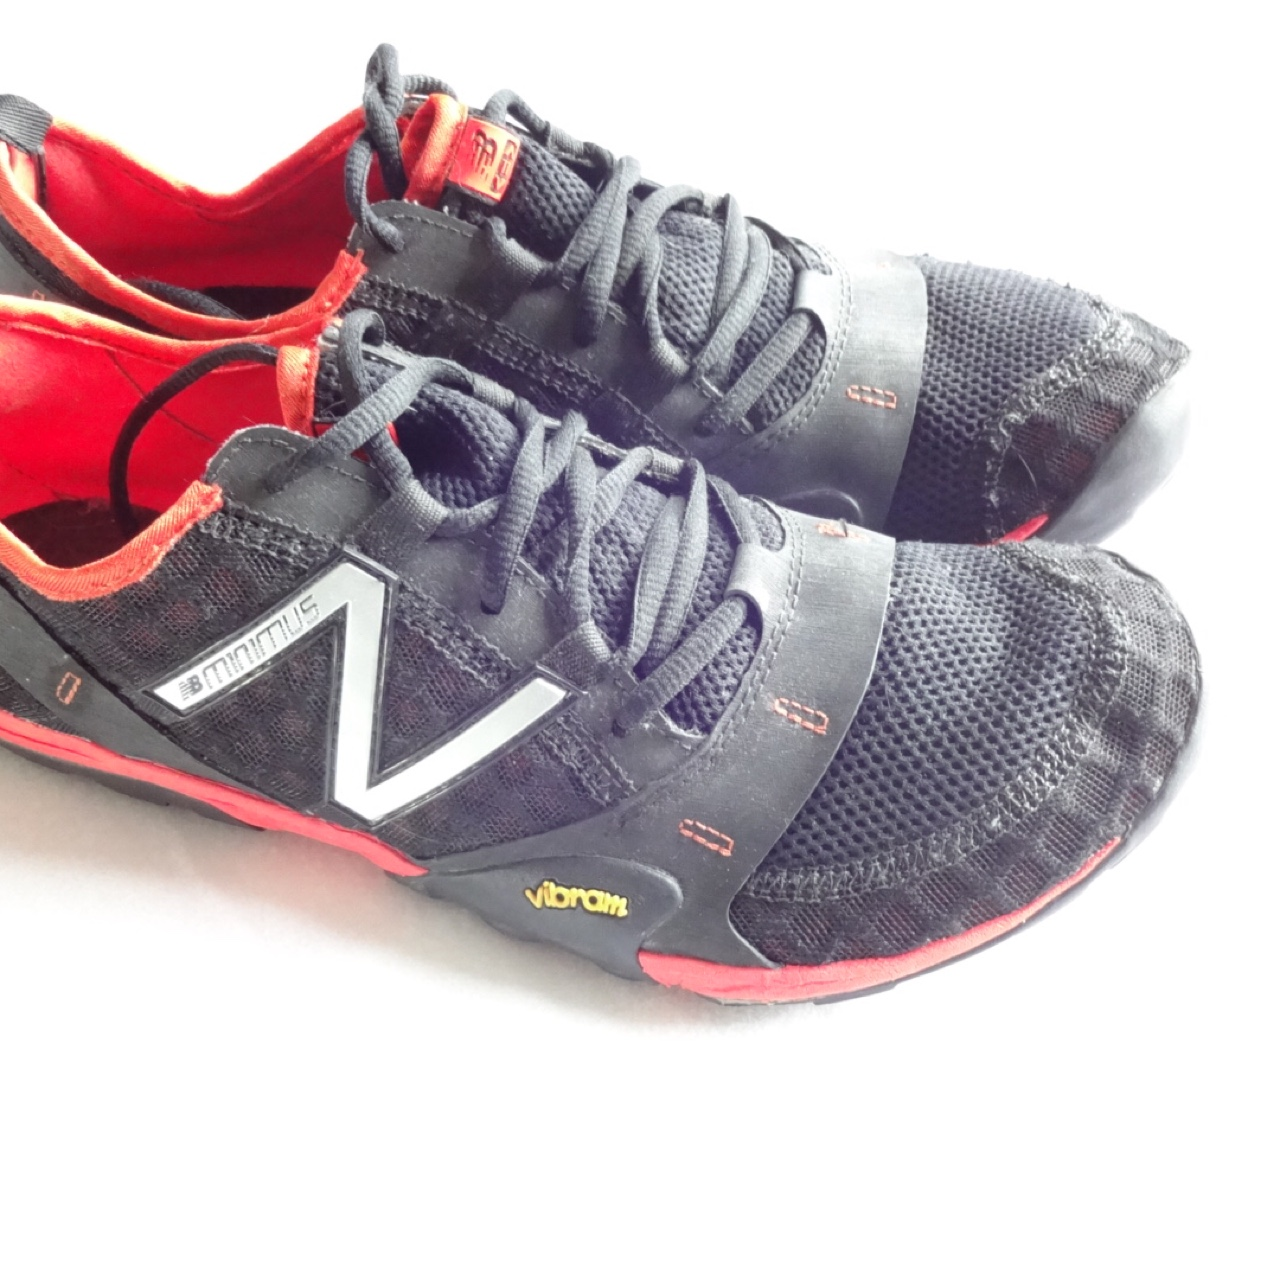 check out e0f8a 210ed New balance barefoot runners trainers - Depop